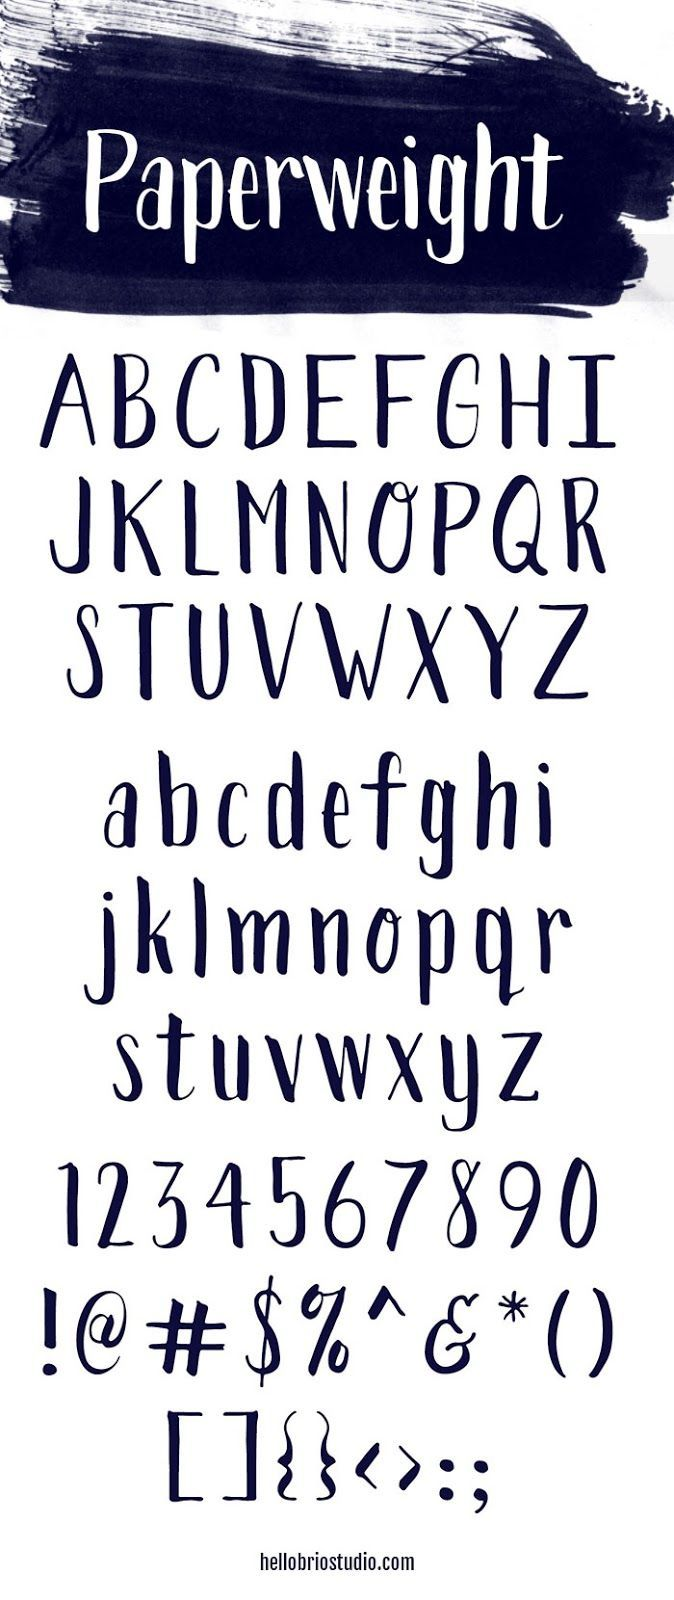 Paperweight Font By Jnnfrcyl At Hello Brio Studio